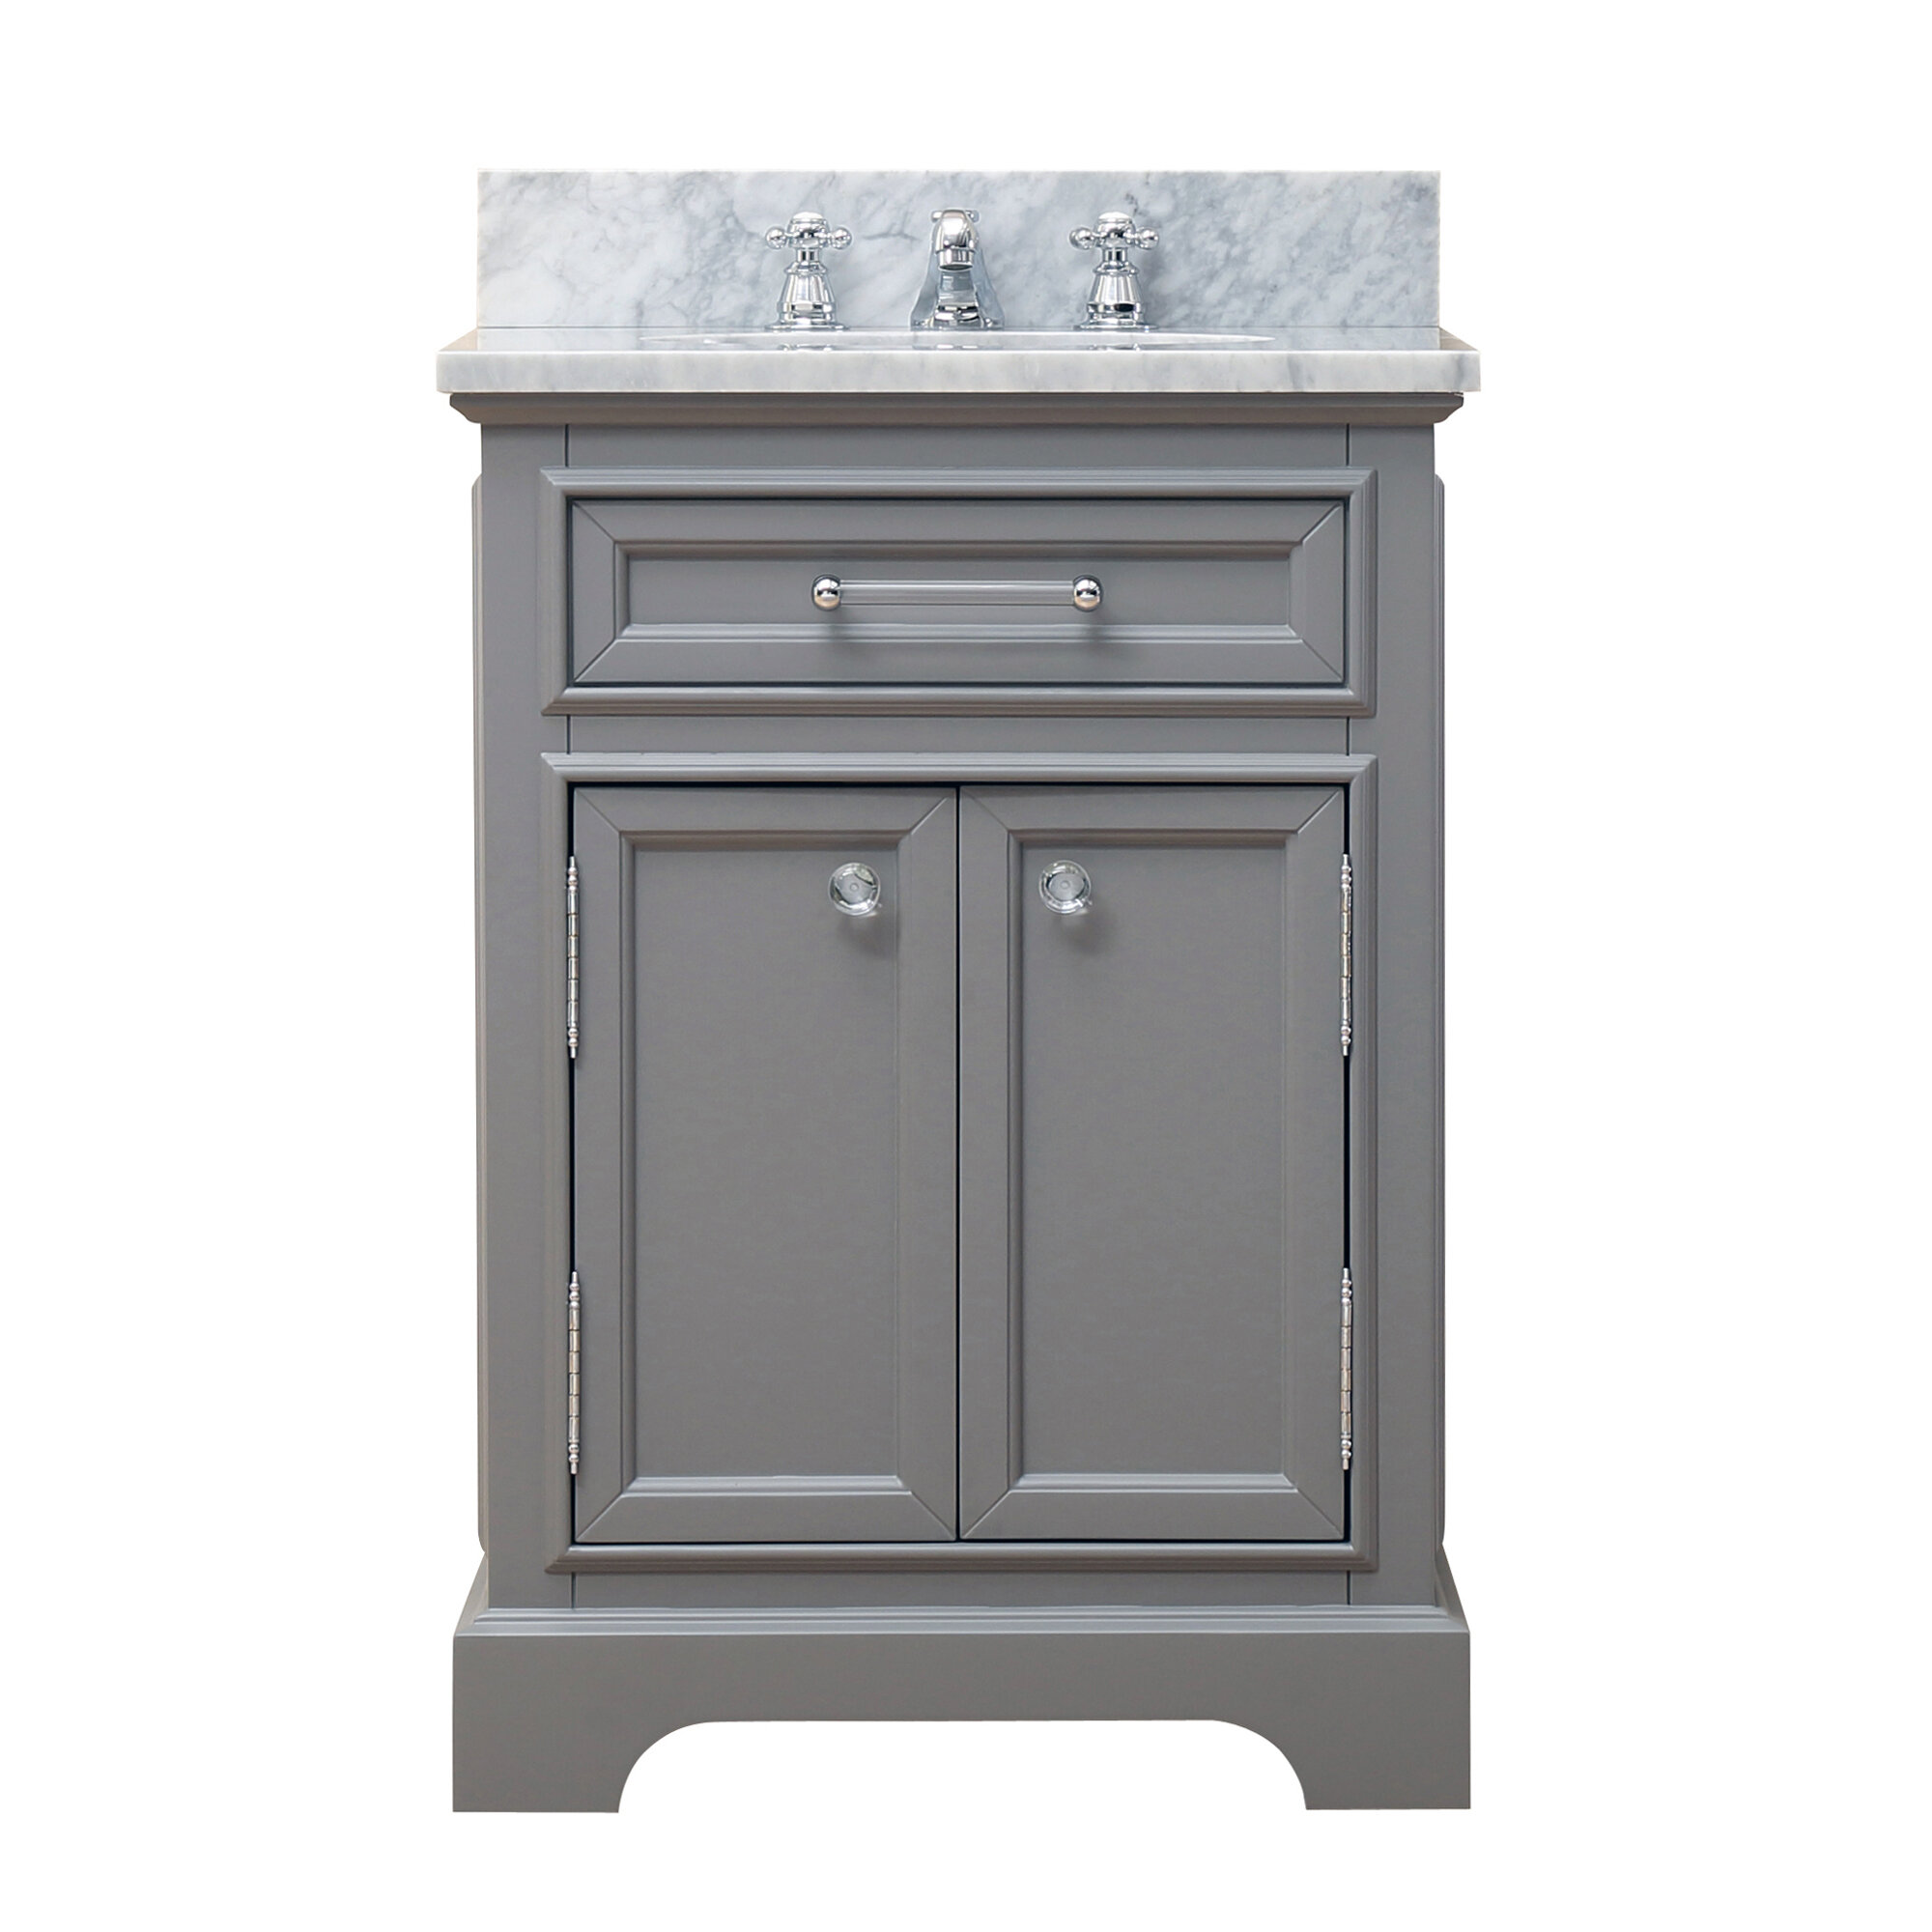 24 Inch Solid Wood Bathroom Vanities You Ll Love In 2021 Wayfair